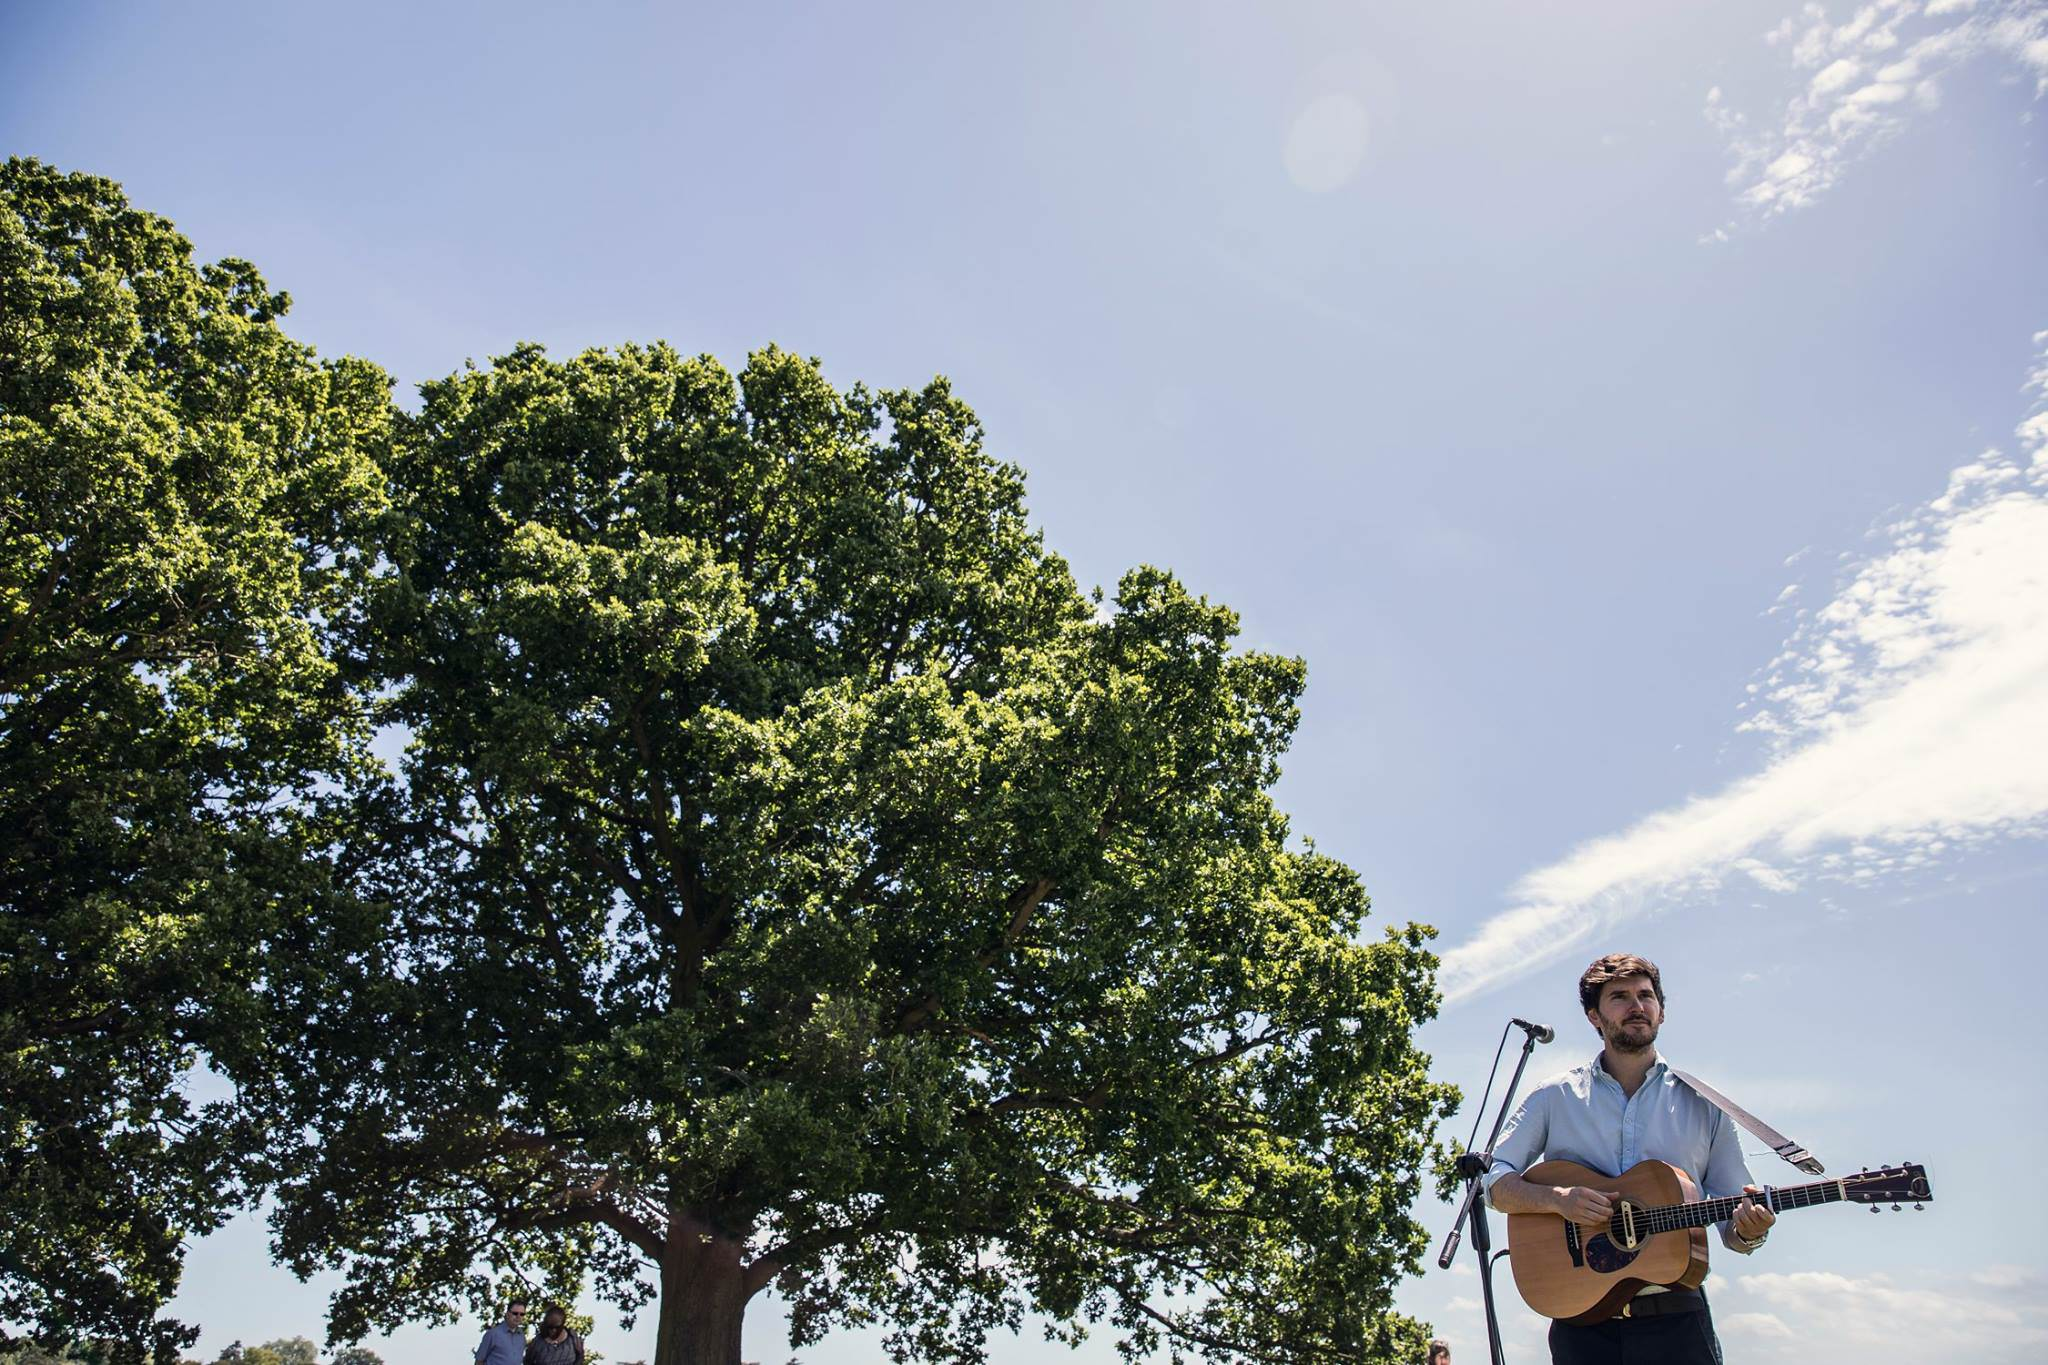 acoustic guitarist in a field on a sunny day